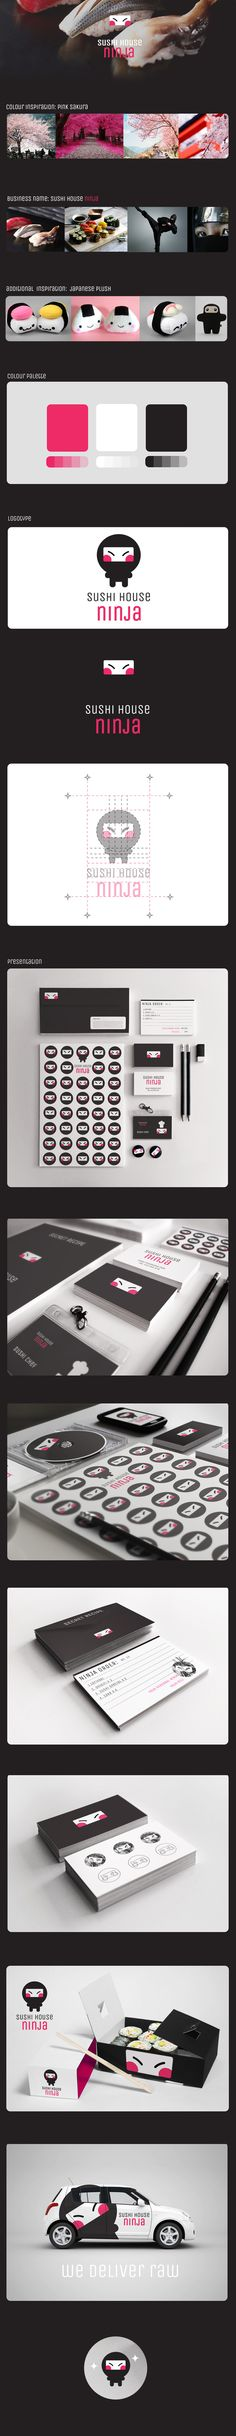 Sushi House Ninja by Cosa Nostra, via Behance #identity #packaging #branding #marketing PD